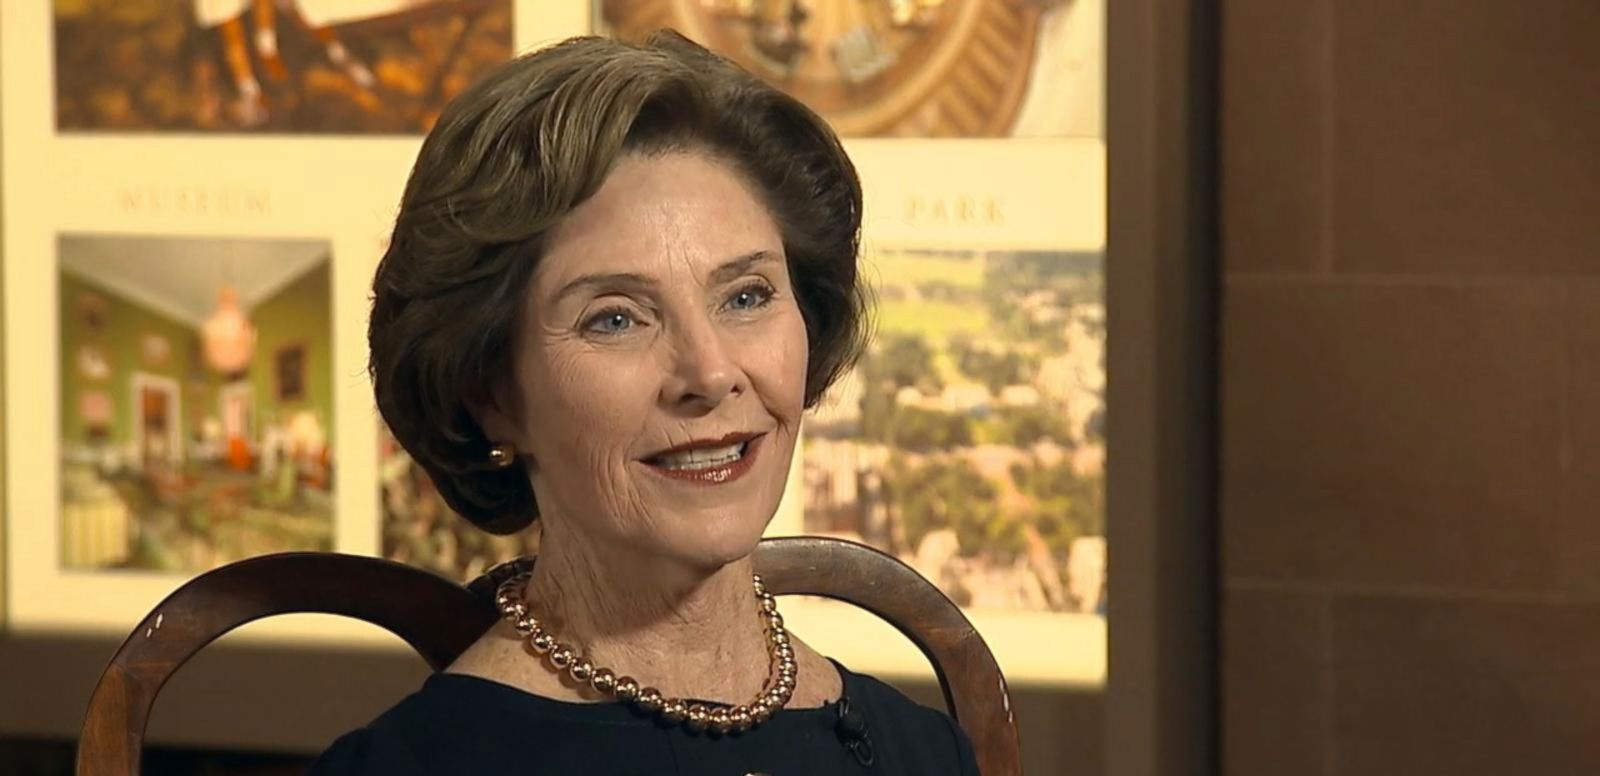 VIDEO: Laura Bush on former President George W. Bush's Latest Painting Project